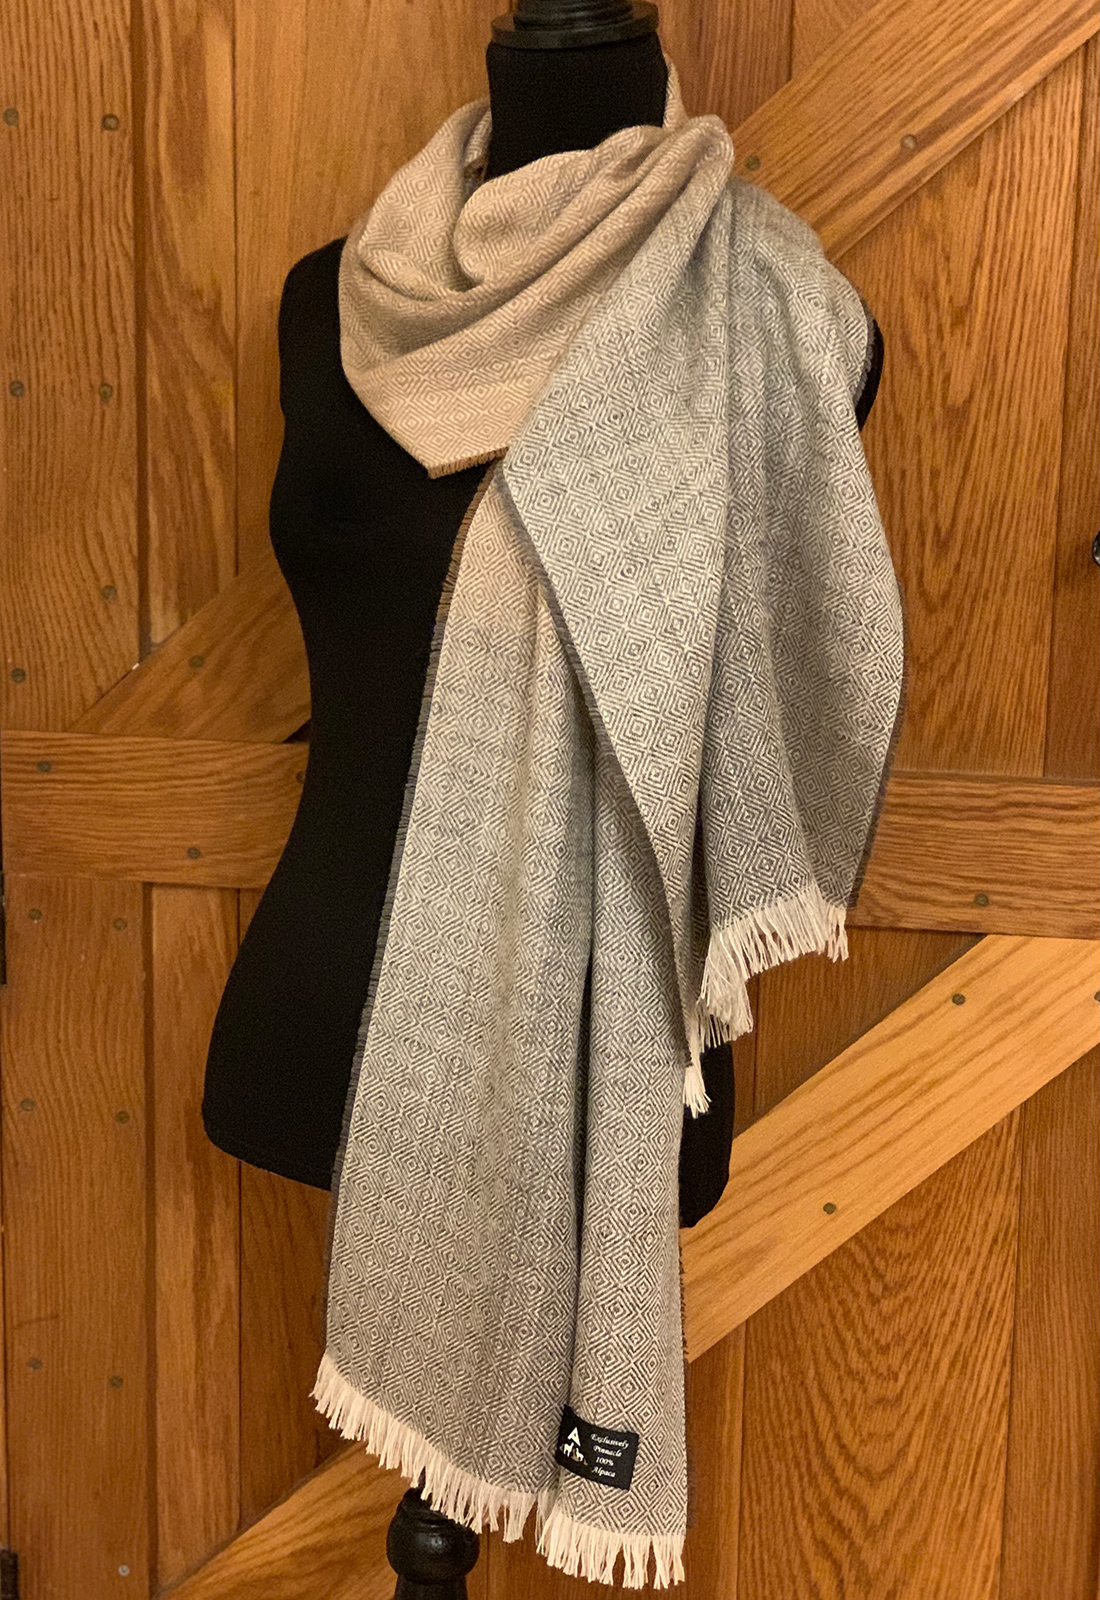 Fawn and Grey Colourway Scarves 2